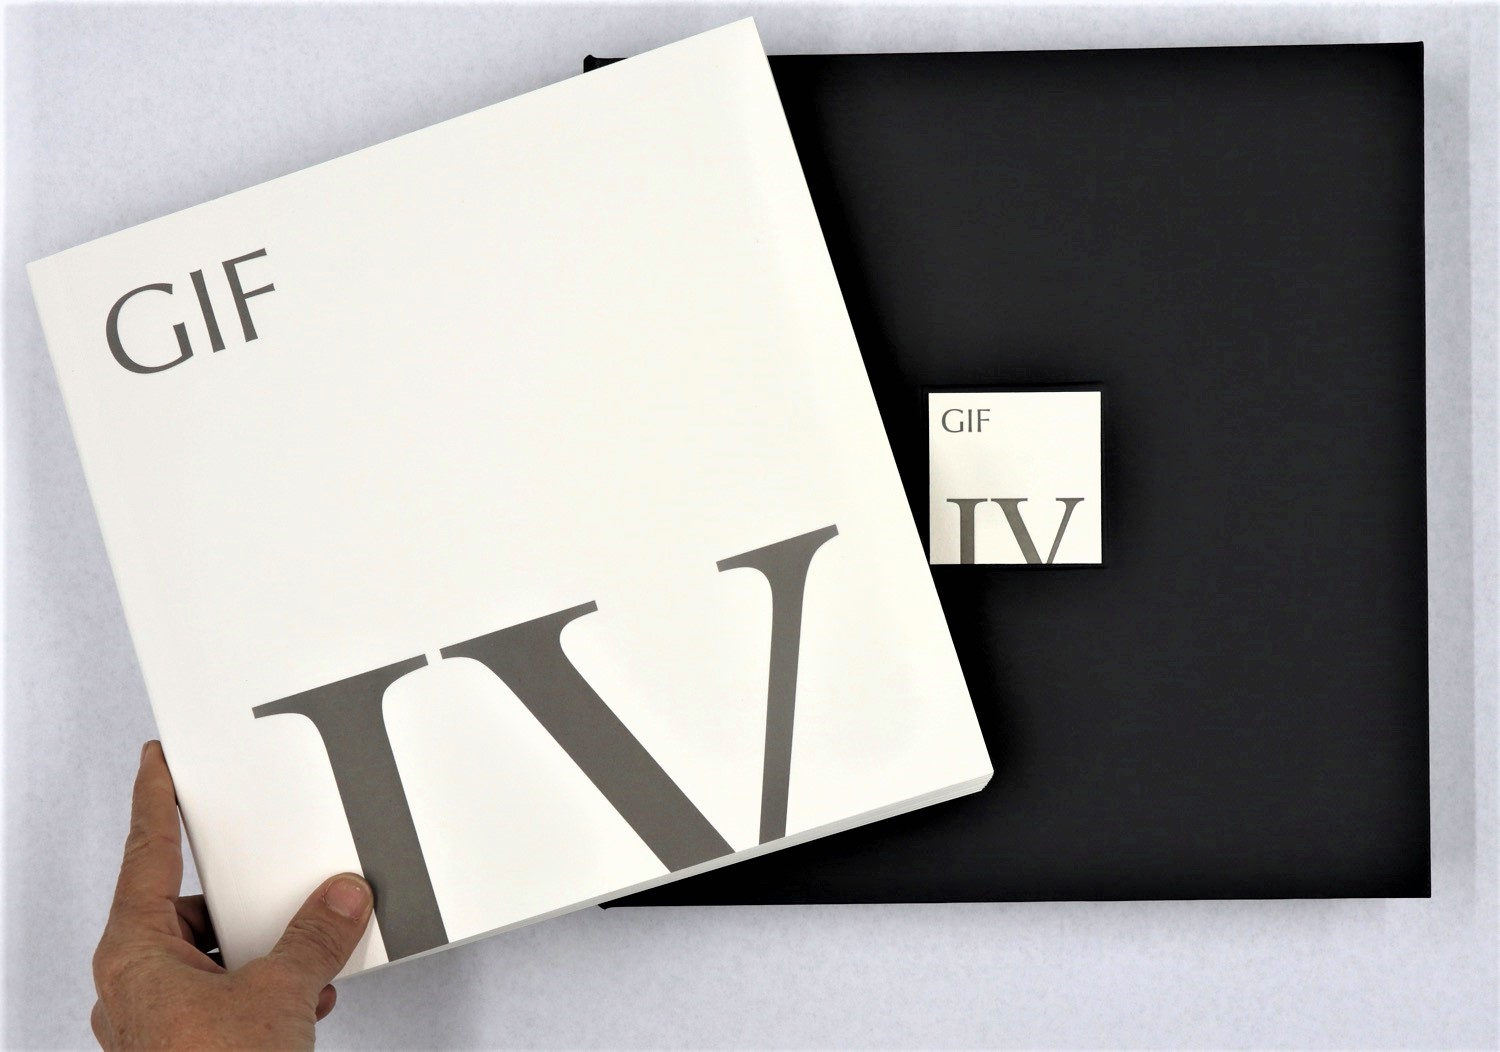 Click the image for a view of: GIF IV Cover and Box